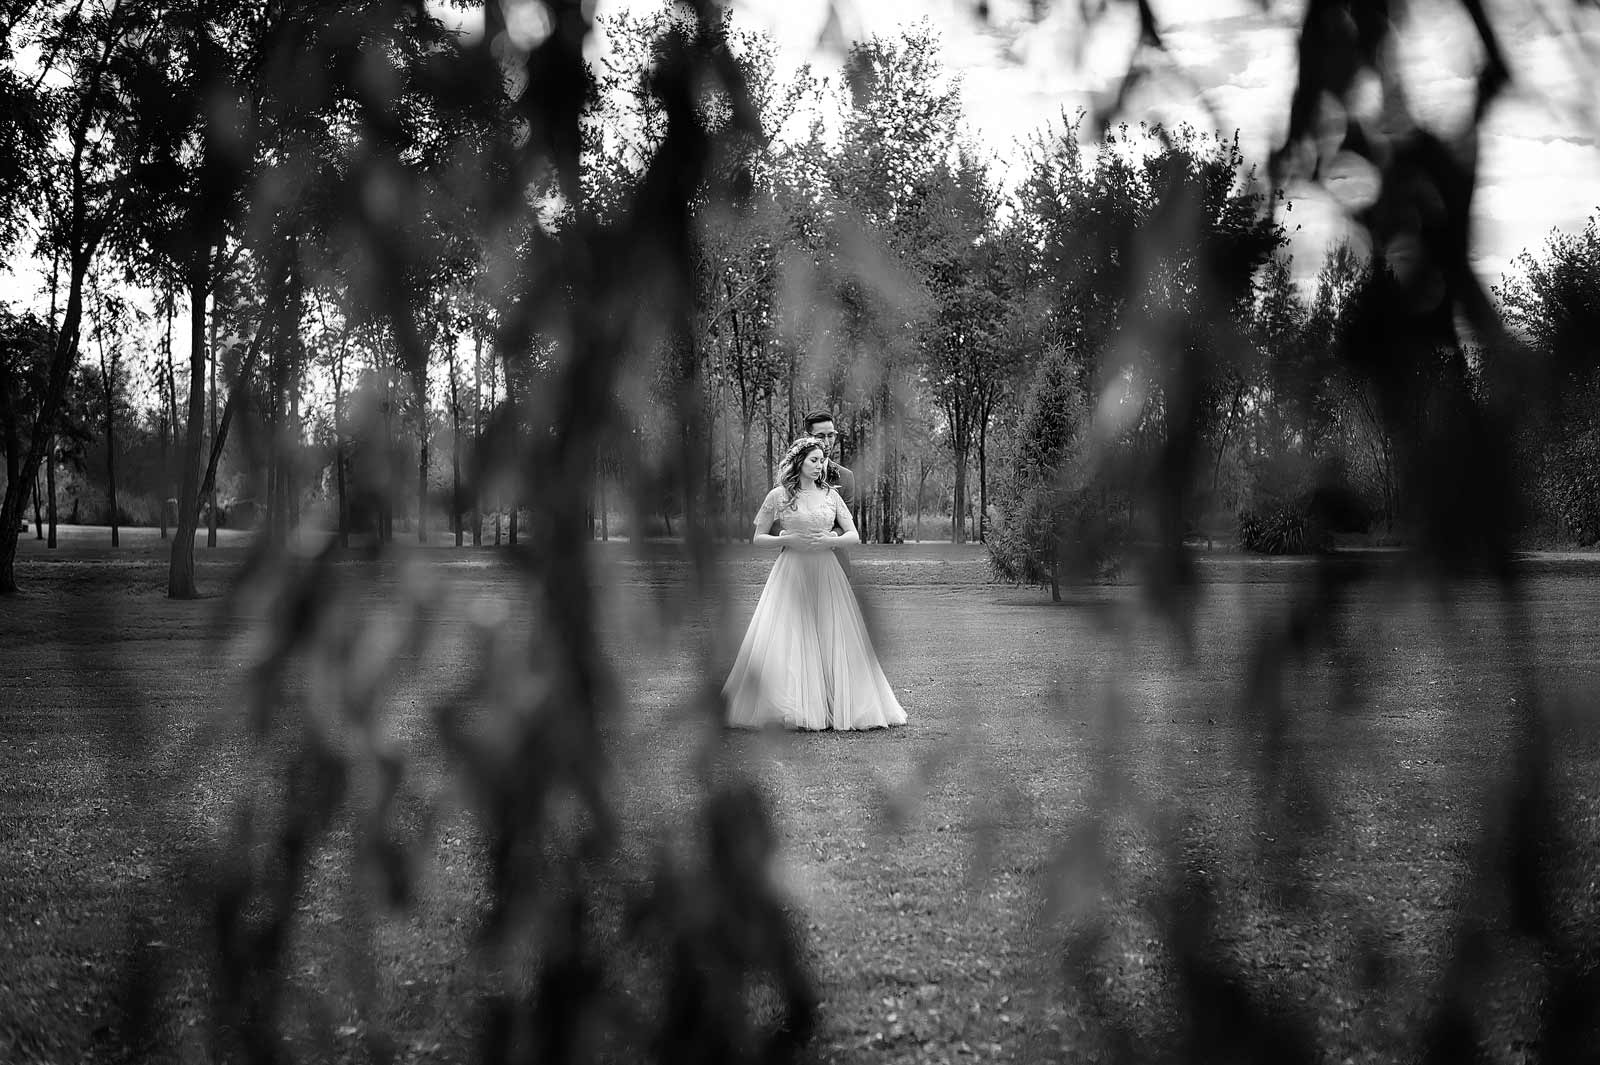 Kayla and Eli's Ottawa Wedding Photography at Stonefields in Carleton Place, Beckwith, Ontario with the bride and groom standing together in black and white